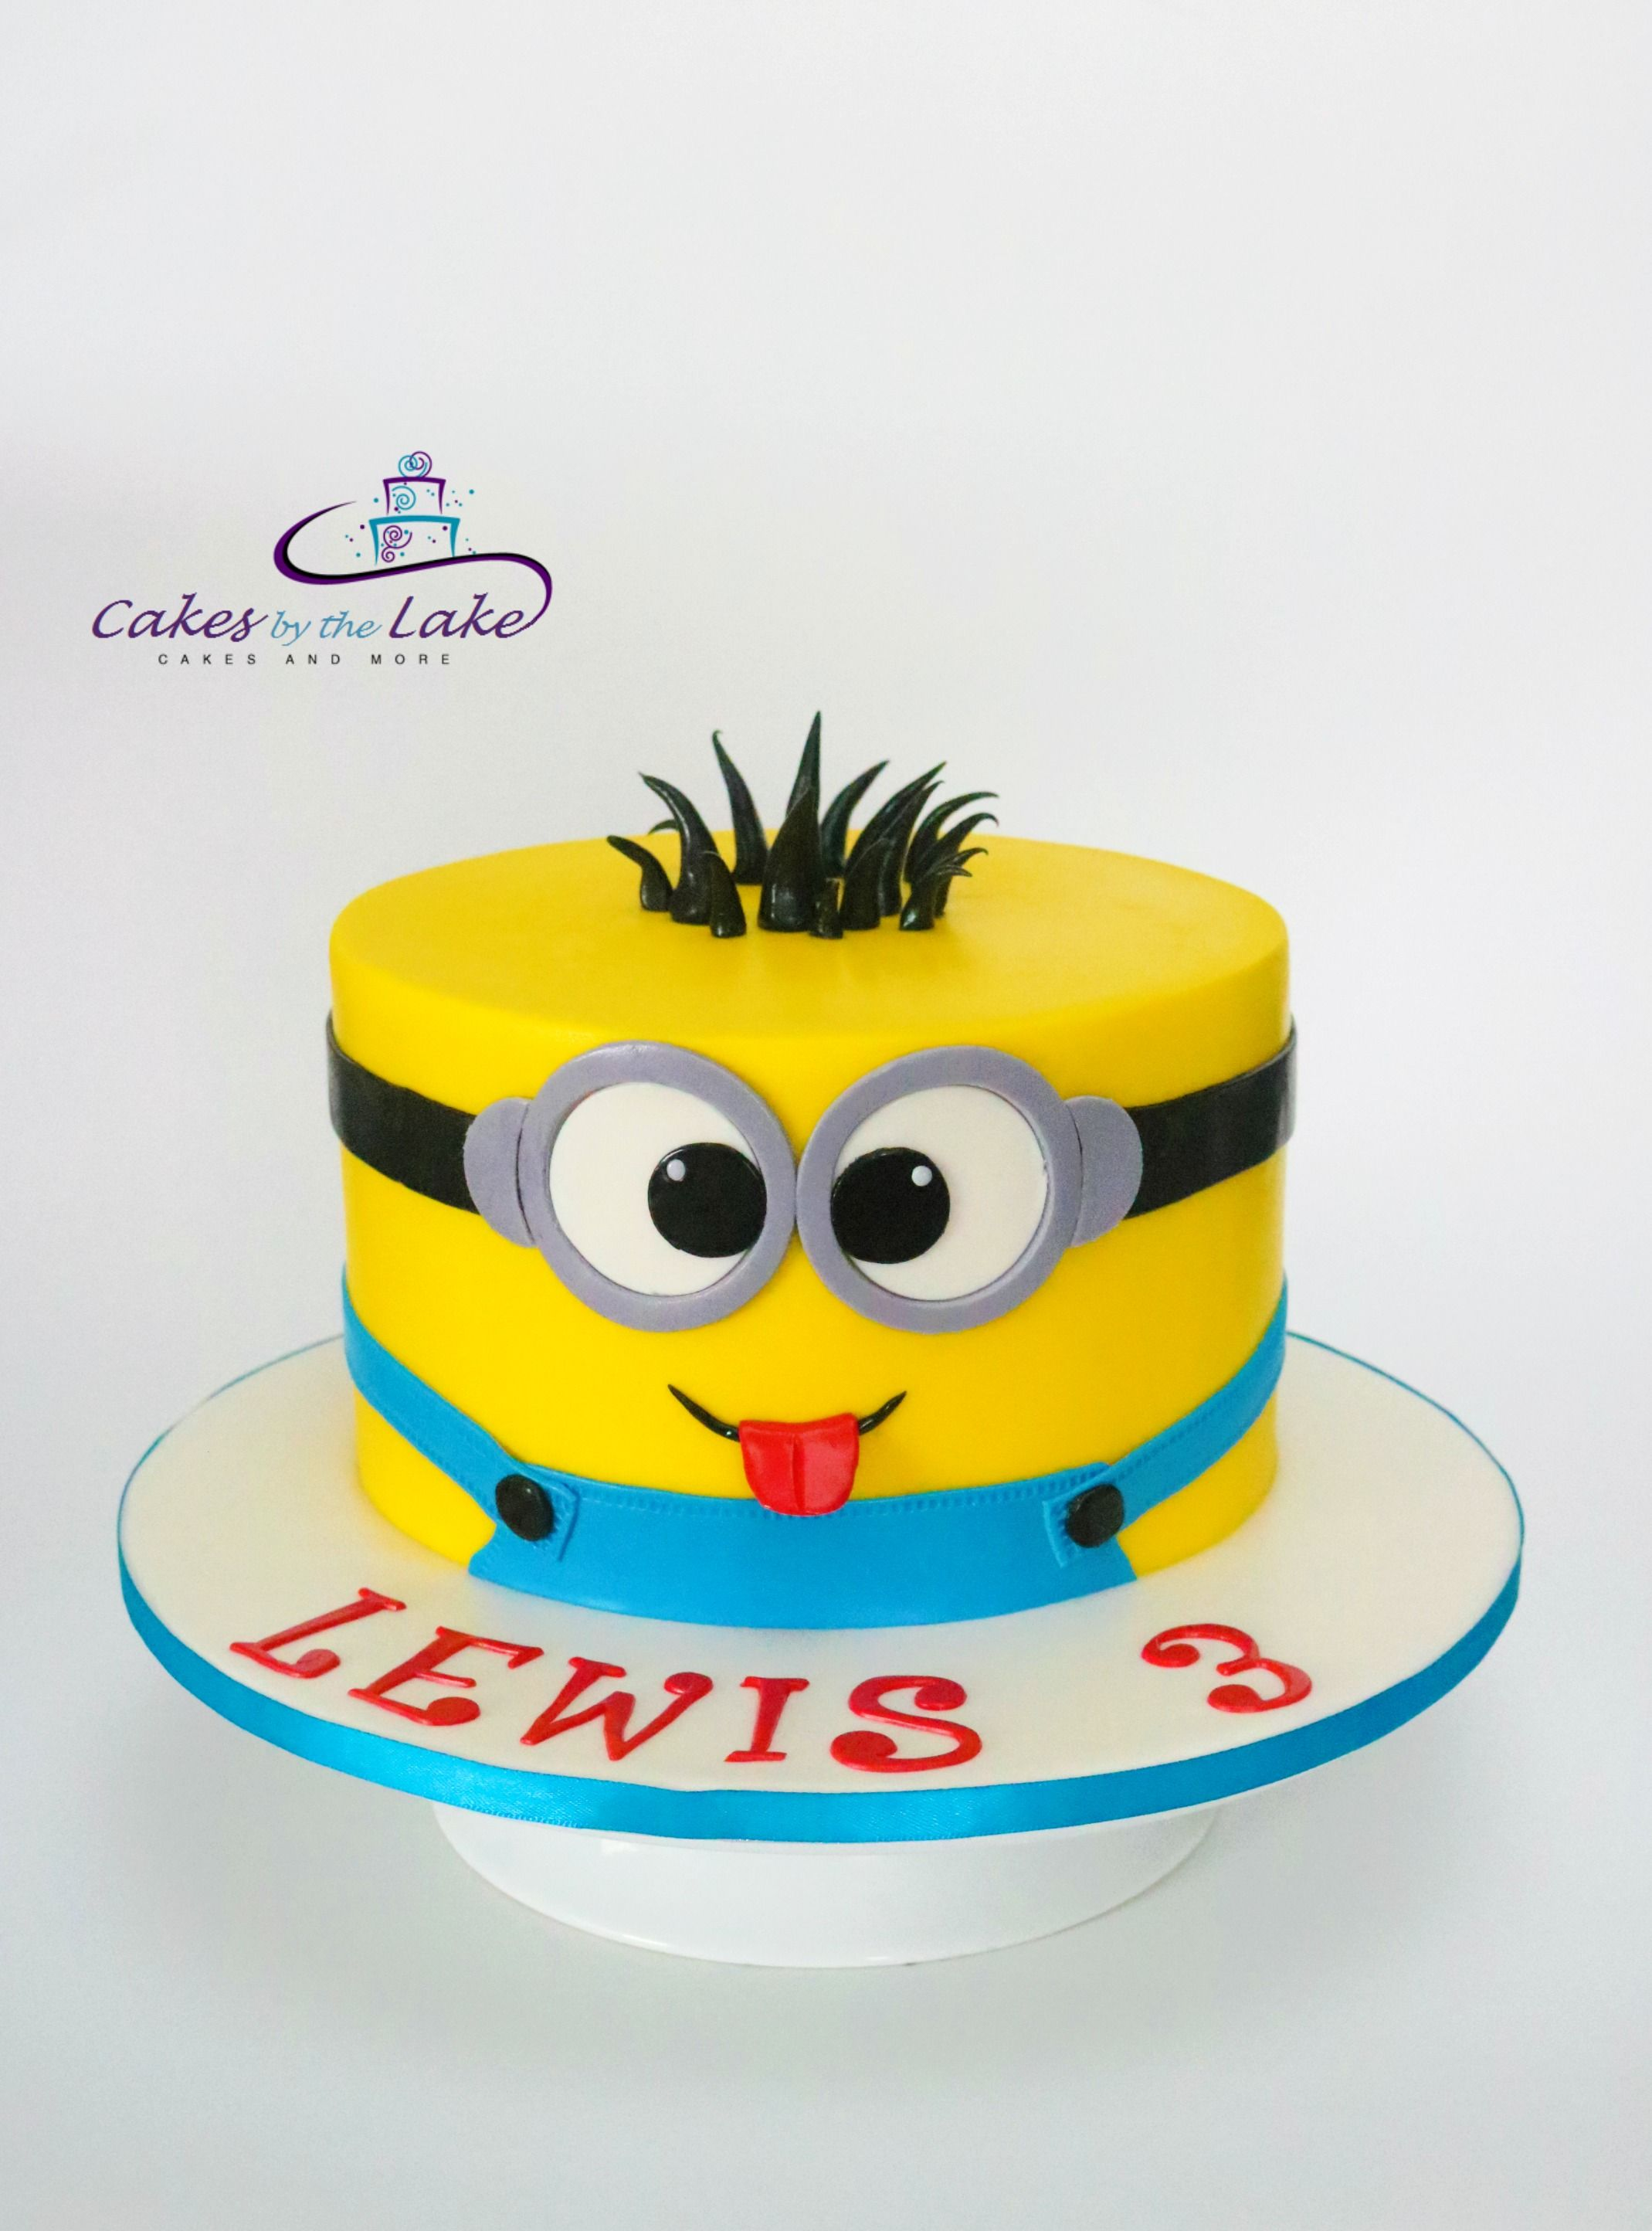 MINION CAKE Strawberry butter cake with strawberry buttercream was the strict instructions of my 3 year old client who requested this Minion cake for his birthday. www.cakesbythelake.com.au www.instagram.com/cakes_by_the_lake